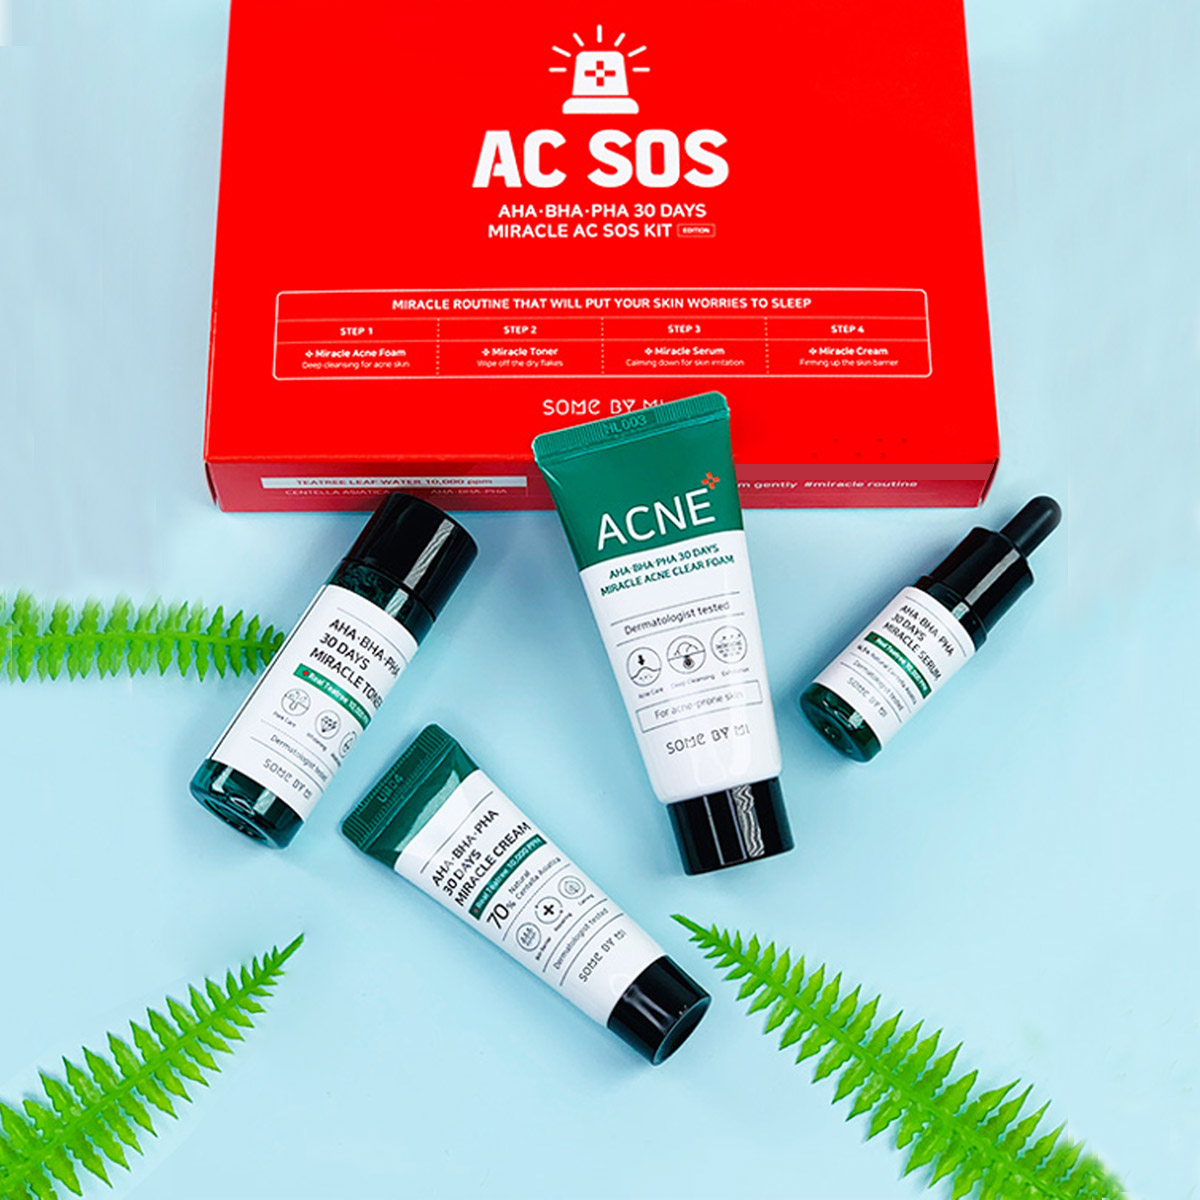 Aha Bha Pha 30 Days Miracle Set Miniaturas Ac Sos Some By Mi Elimina Acné